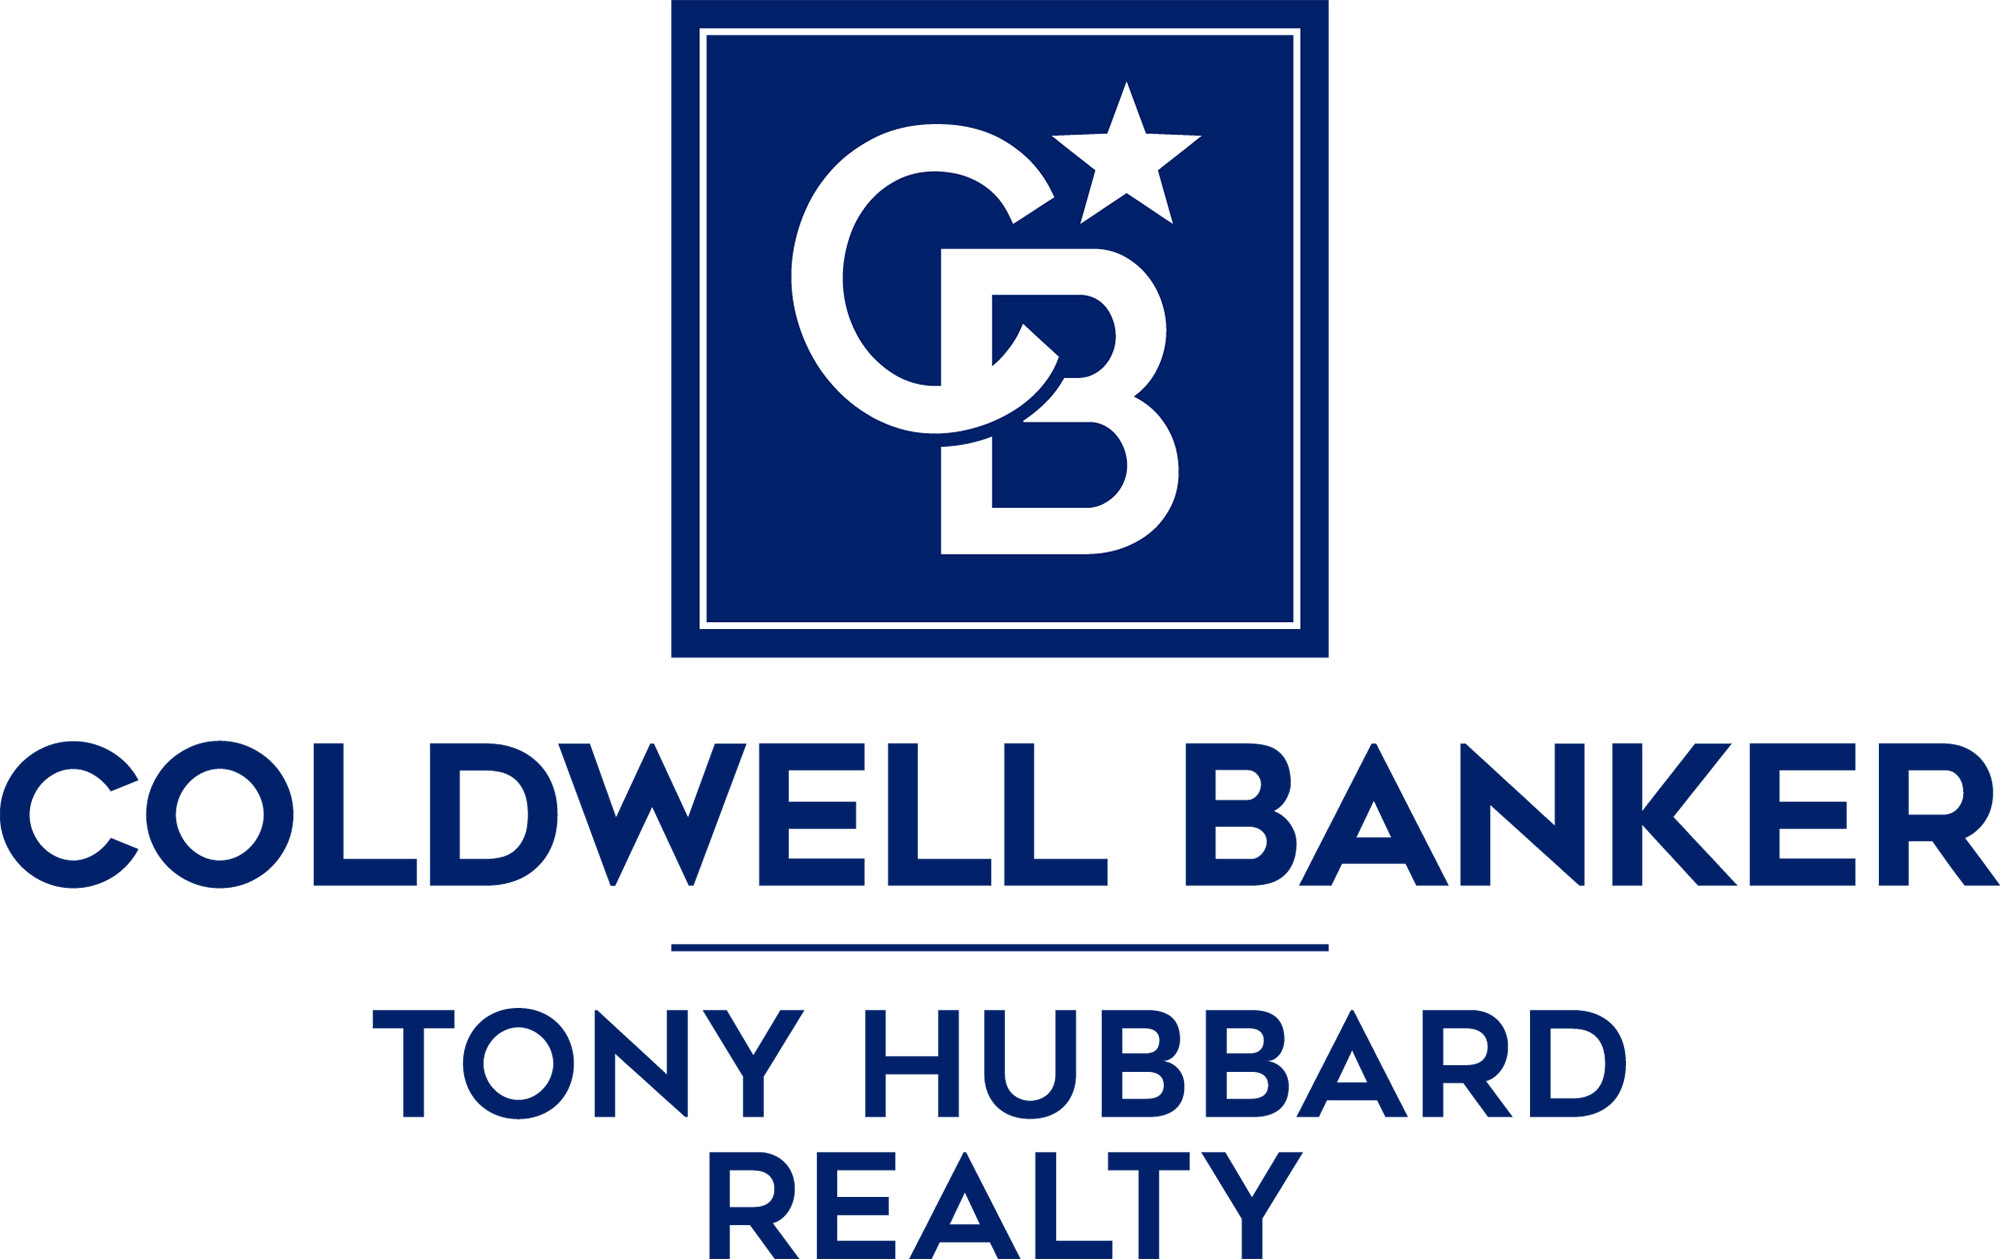 Scott Chevailer - Coldwell Banker Tony Hubbard